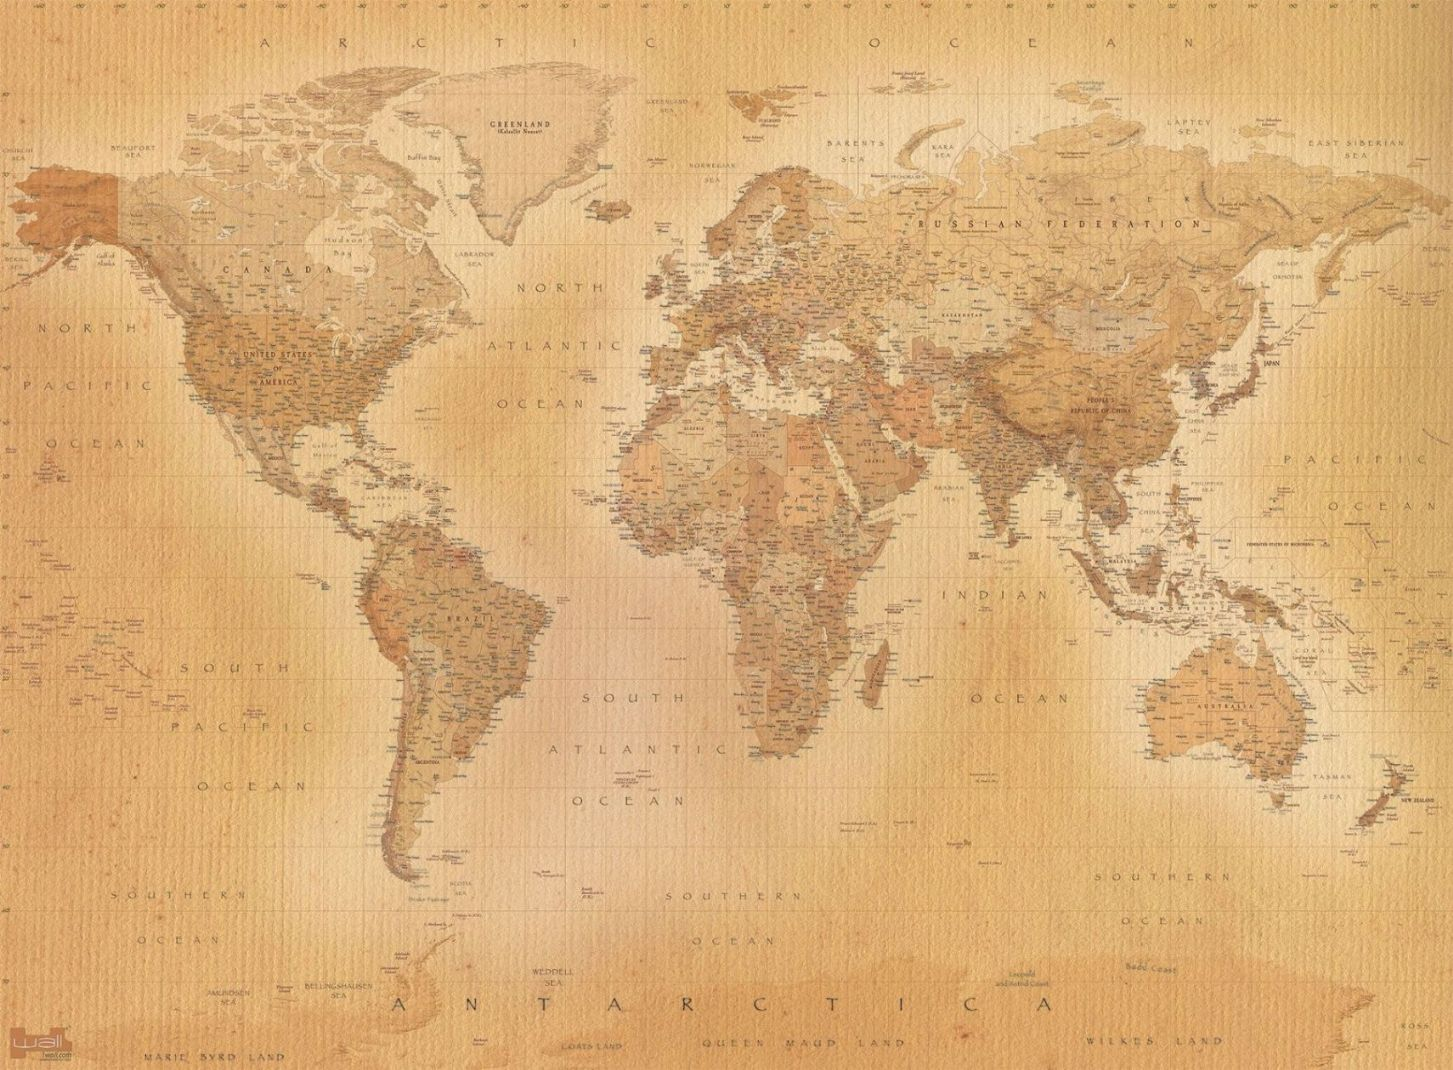 giant vintage world map wallpaper murals online store